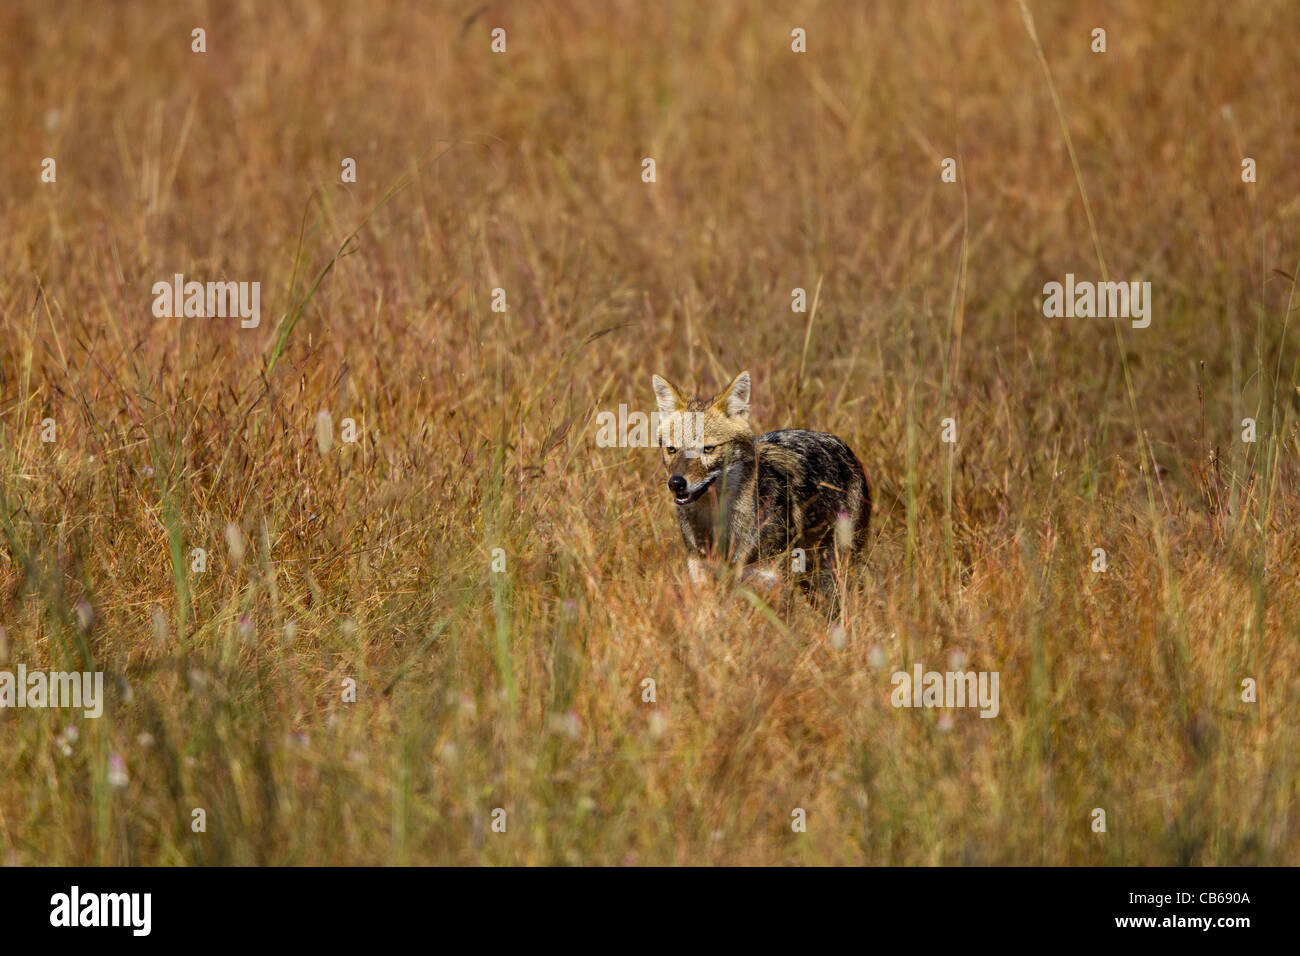 Indian Jackal (Canis aureus indicus), also known as the Himalayan Jackal is a subspecies of golden jackal native - Stock Image